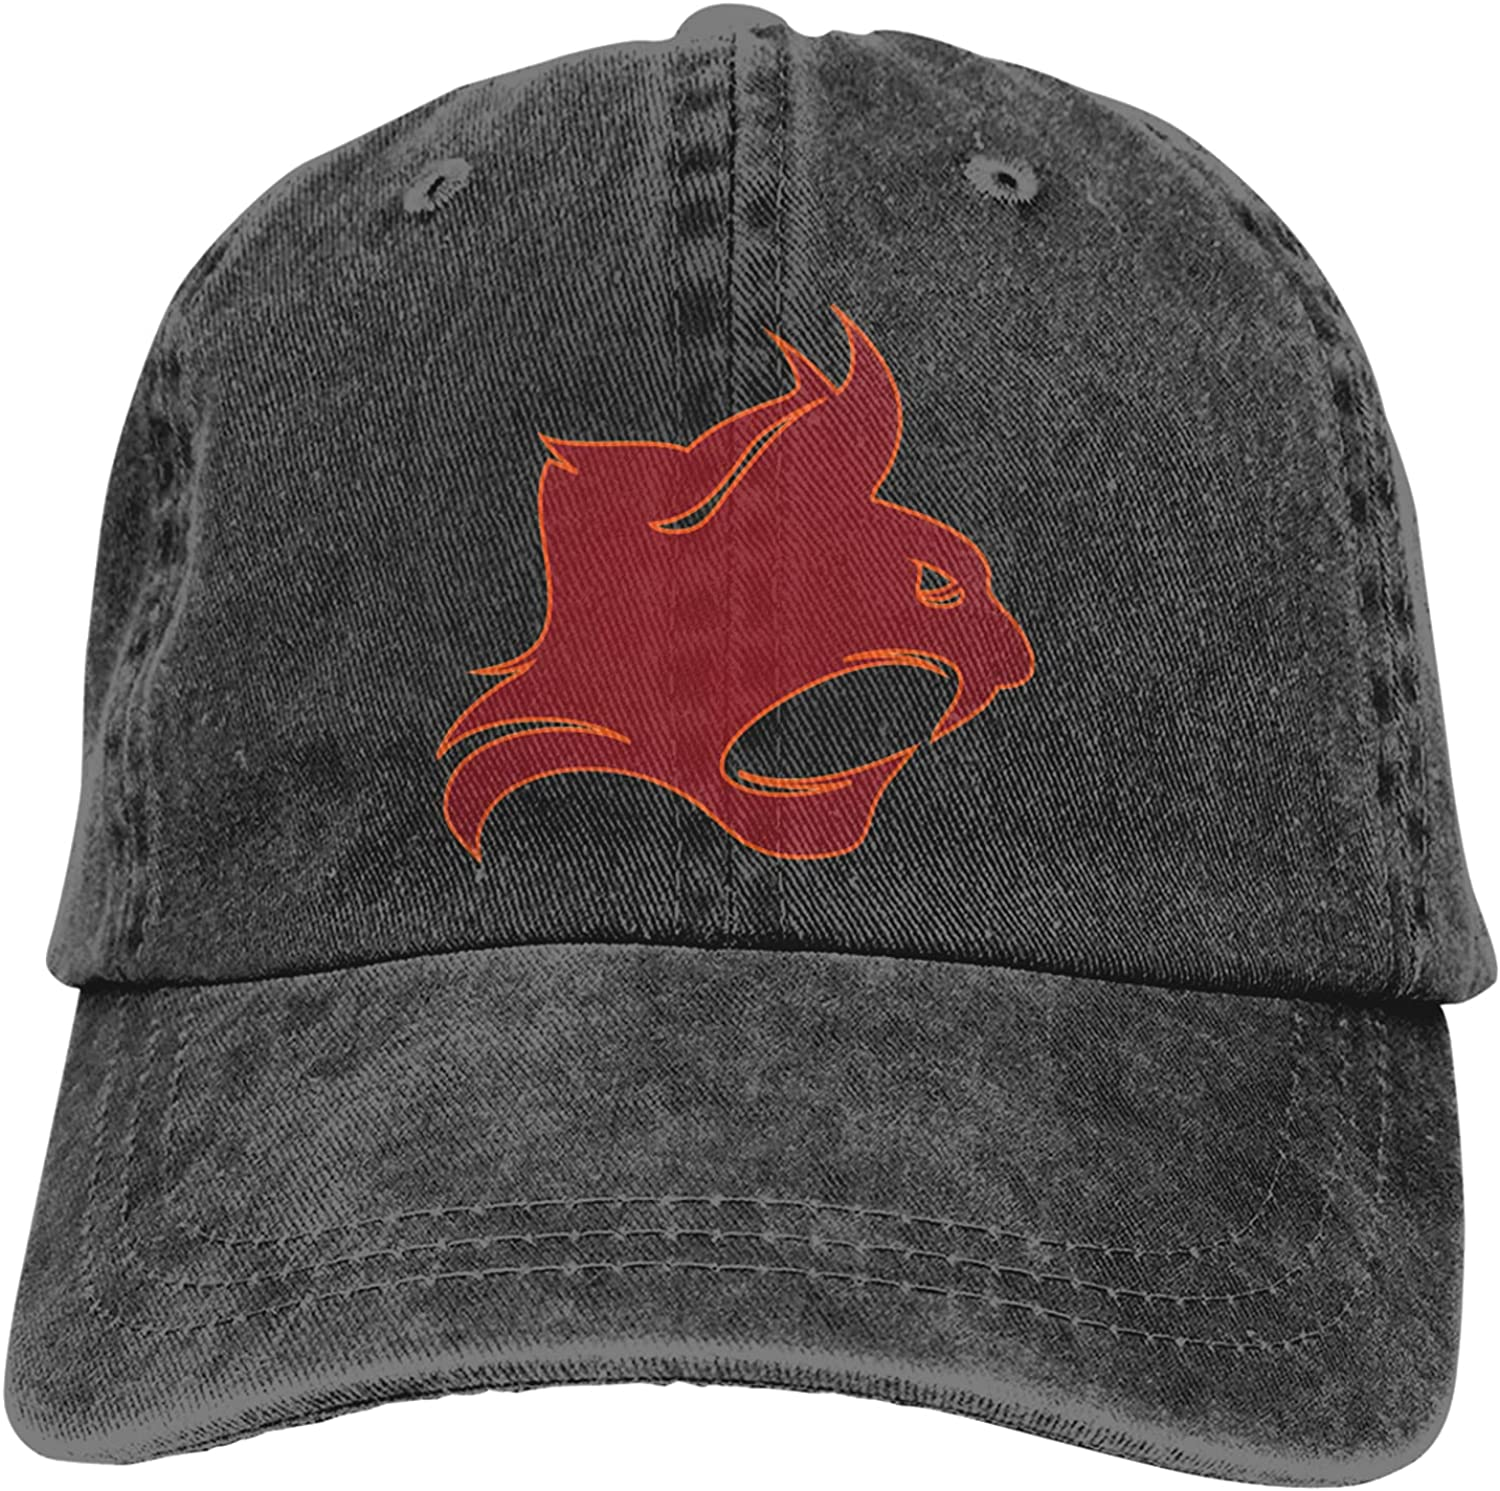 Yund Peru State College Cap Students. Popular product Suitable for Max 60% OFF Adjus